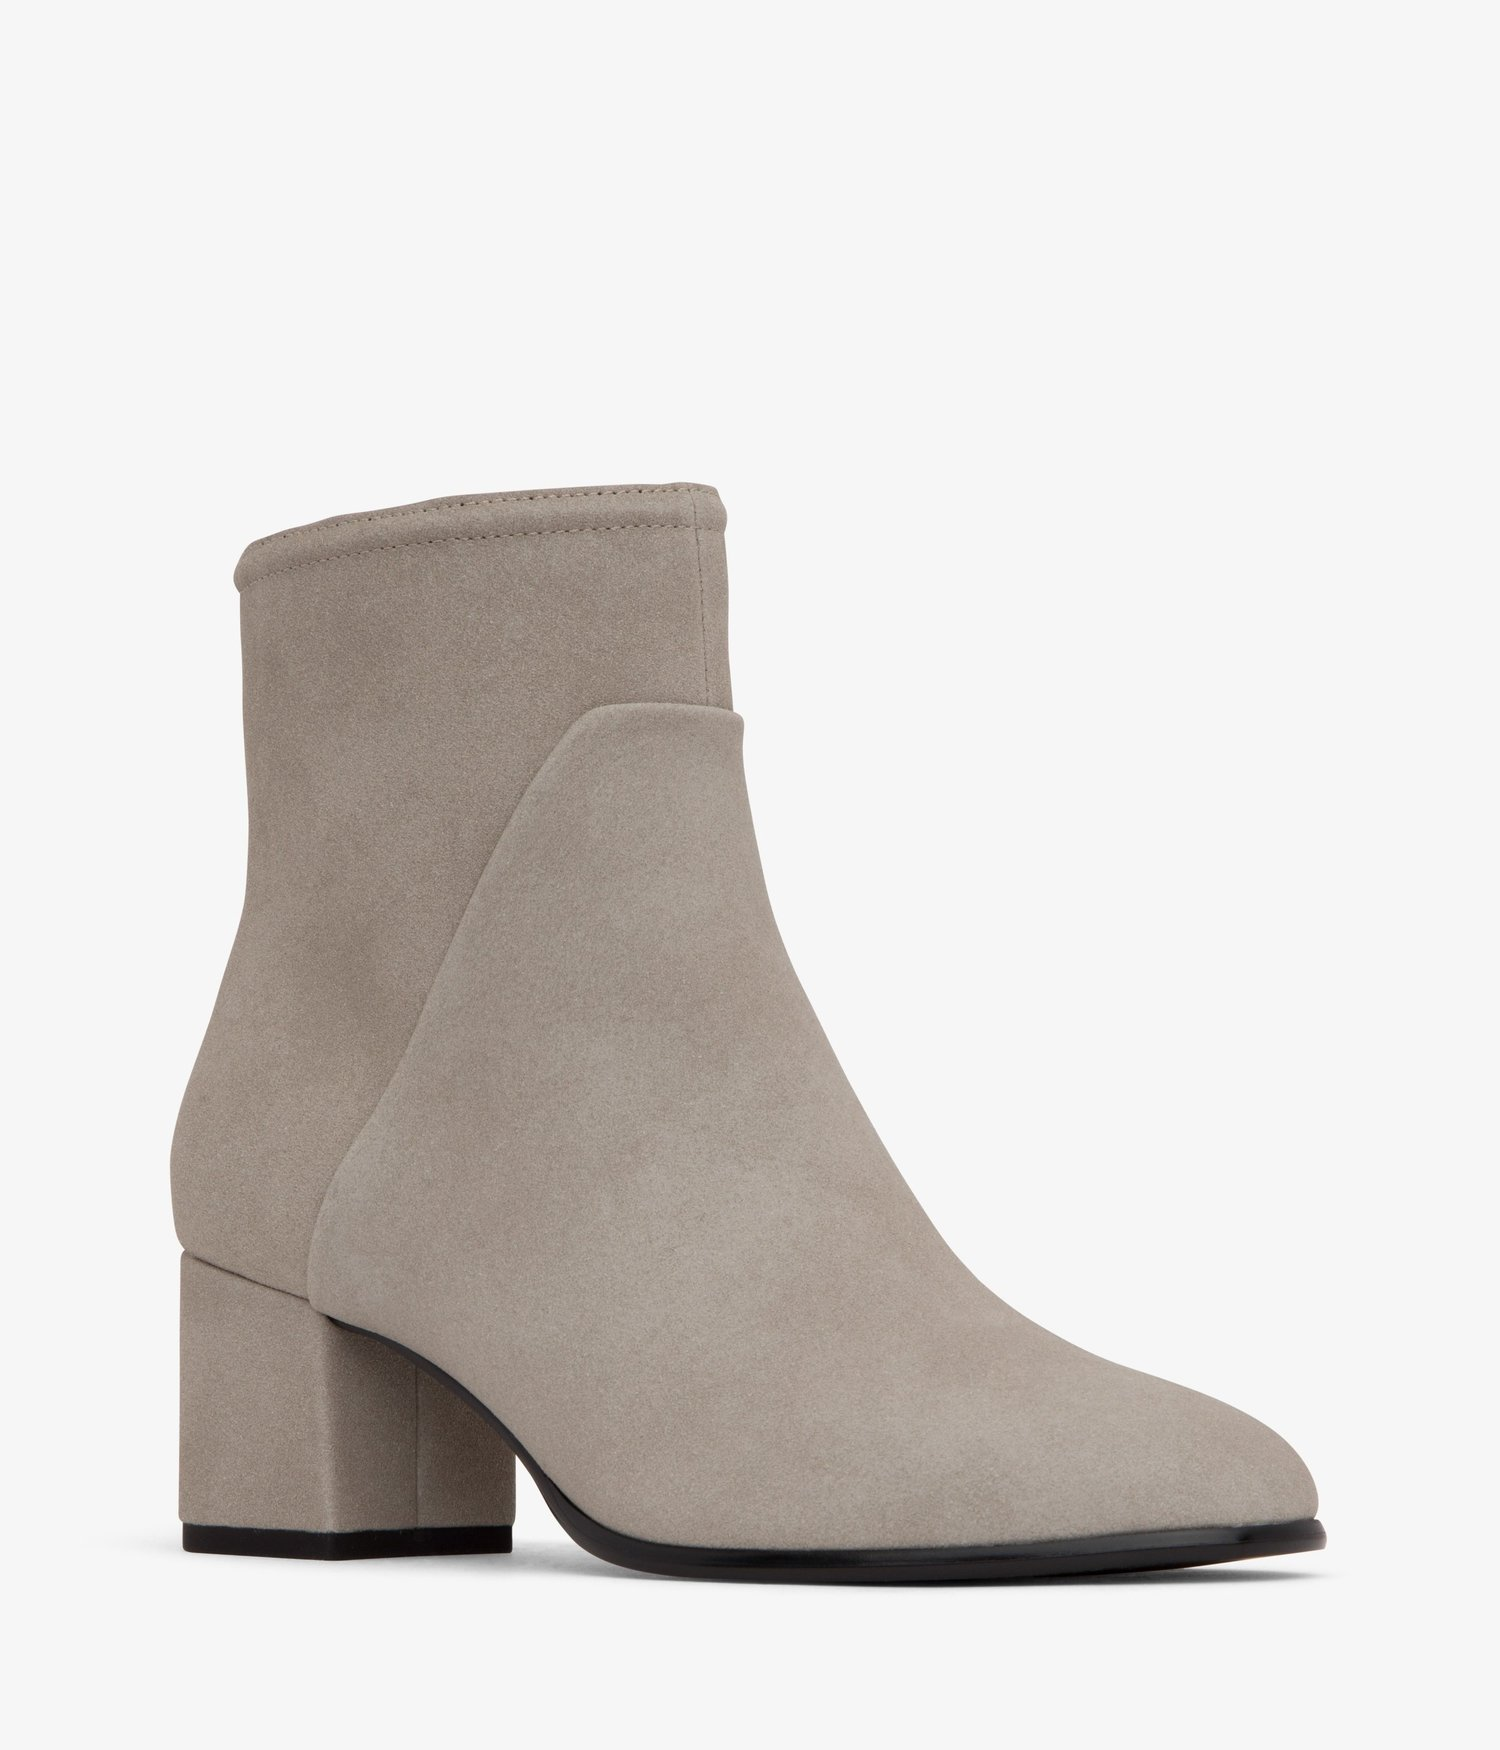 a89618c2014 Step Into Fall With Style In These 10 Ethically-Made Vegan Boots